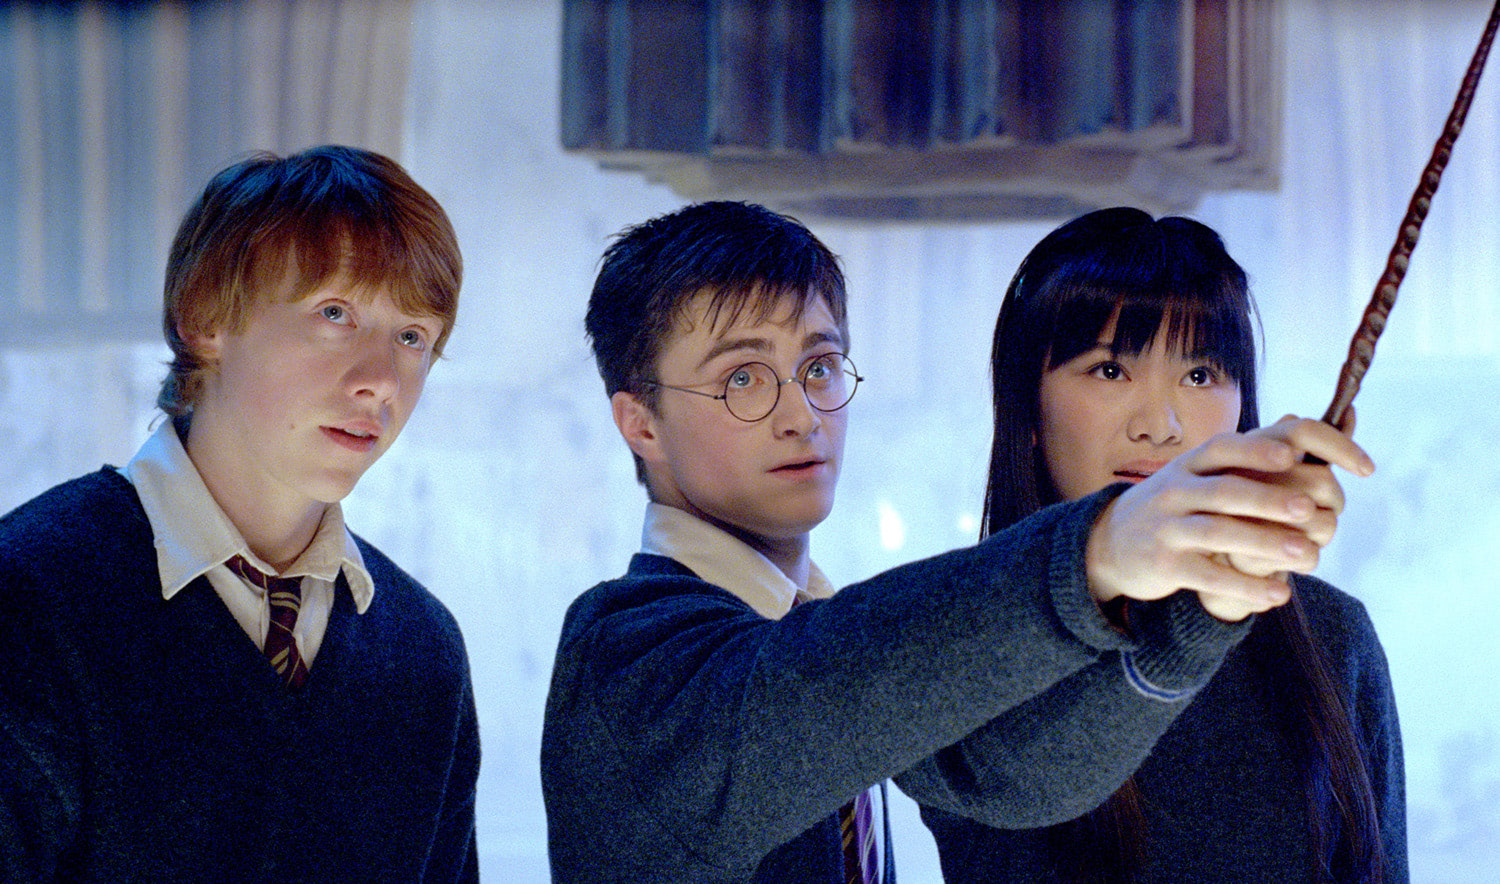 Ron, Harry and Cho in the Room of Requirement